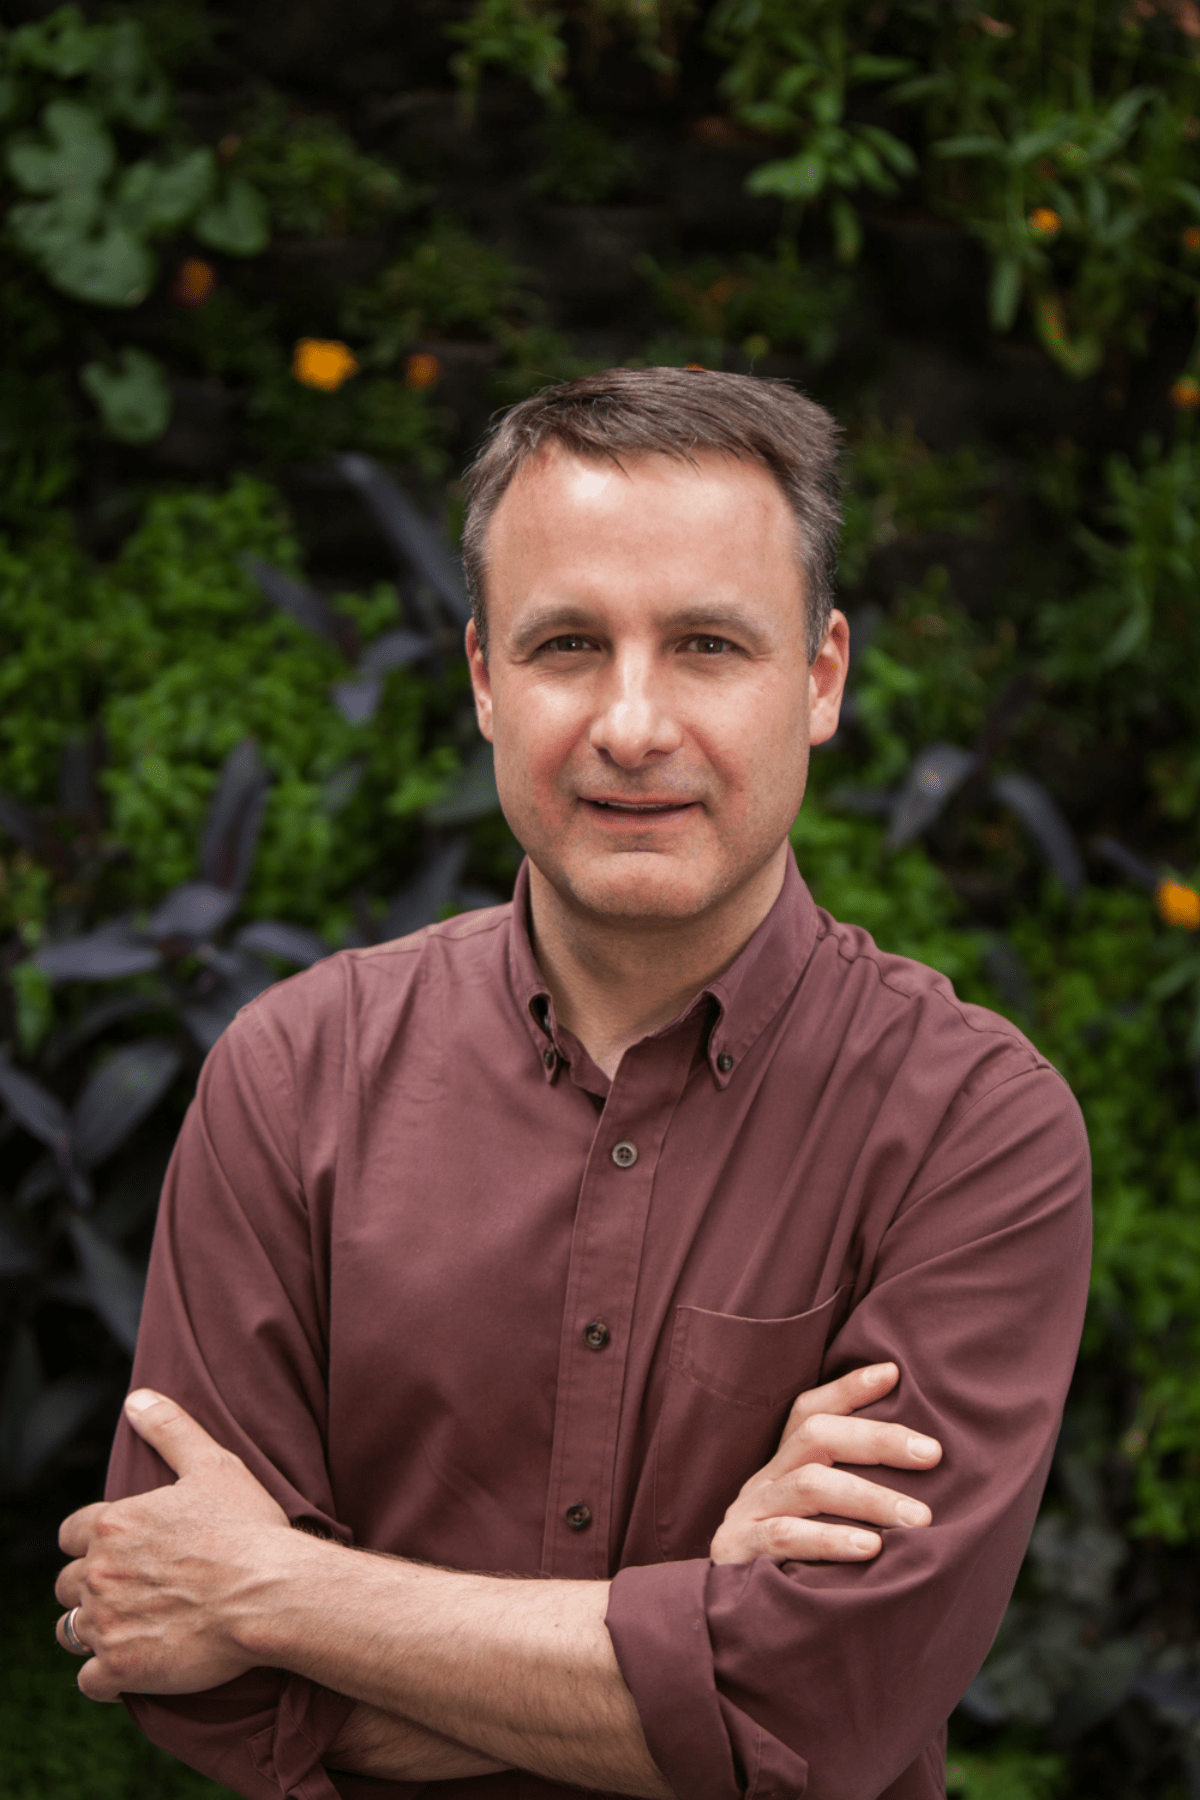 One Roof California Academy Of Sciences Appoints Dr. Jonathan Foley